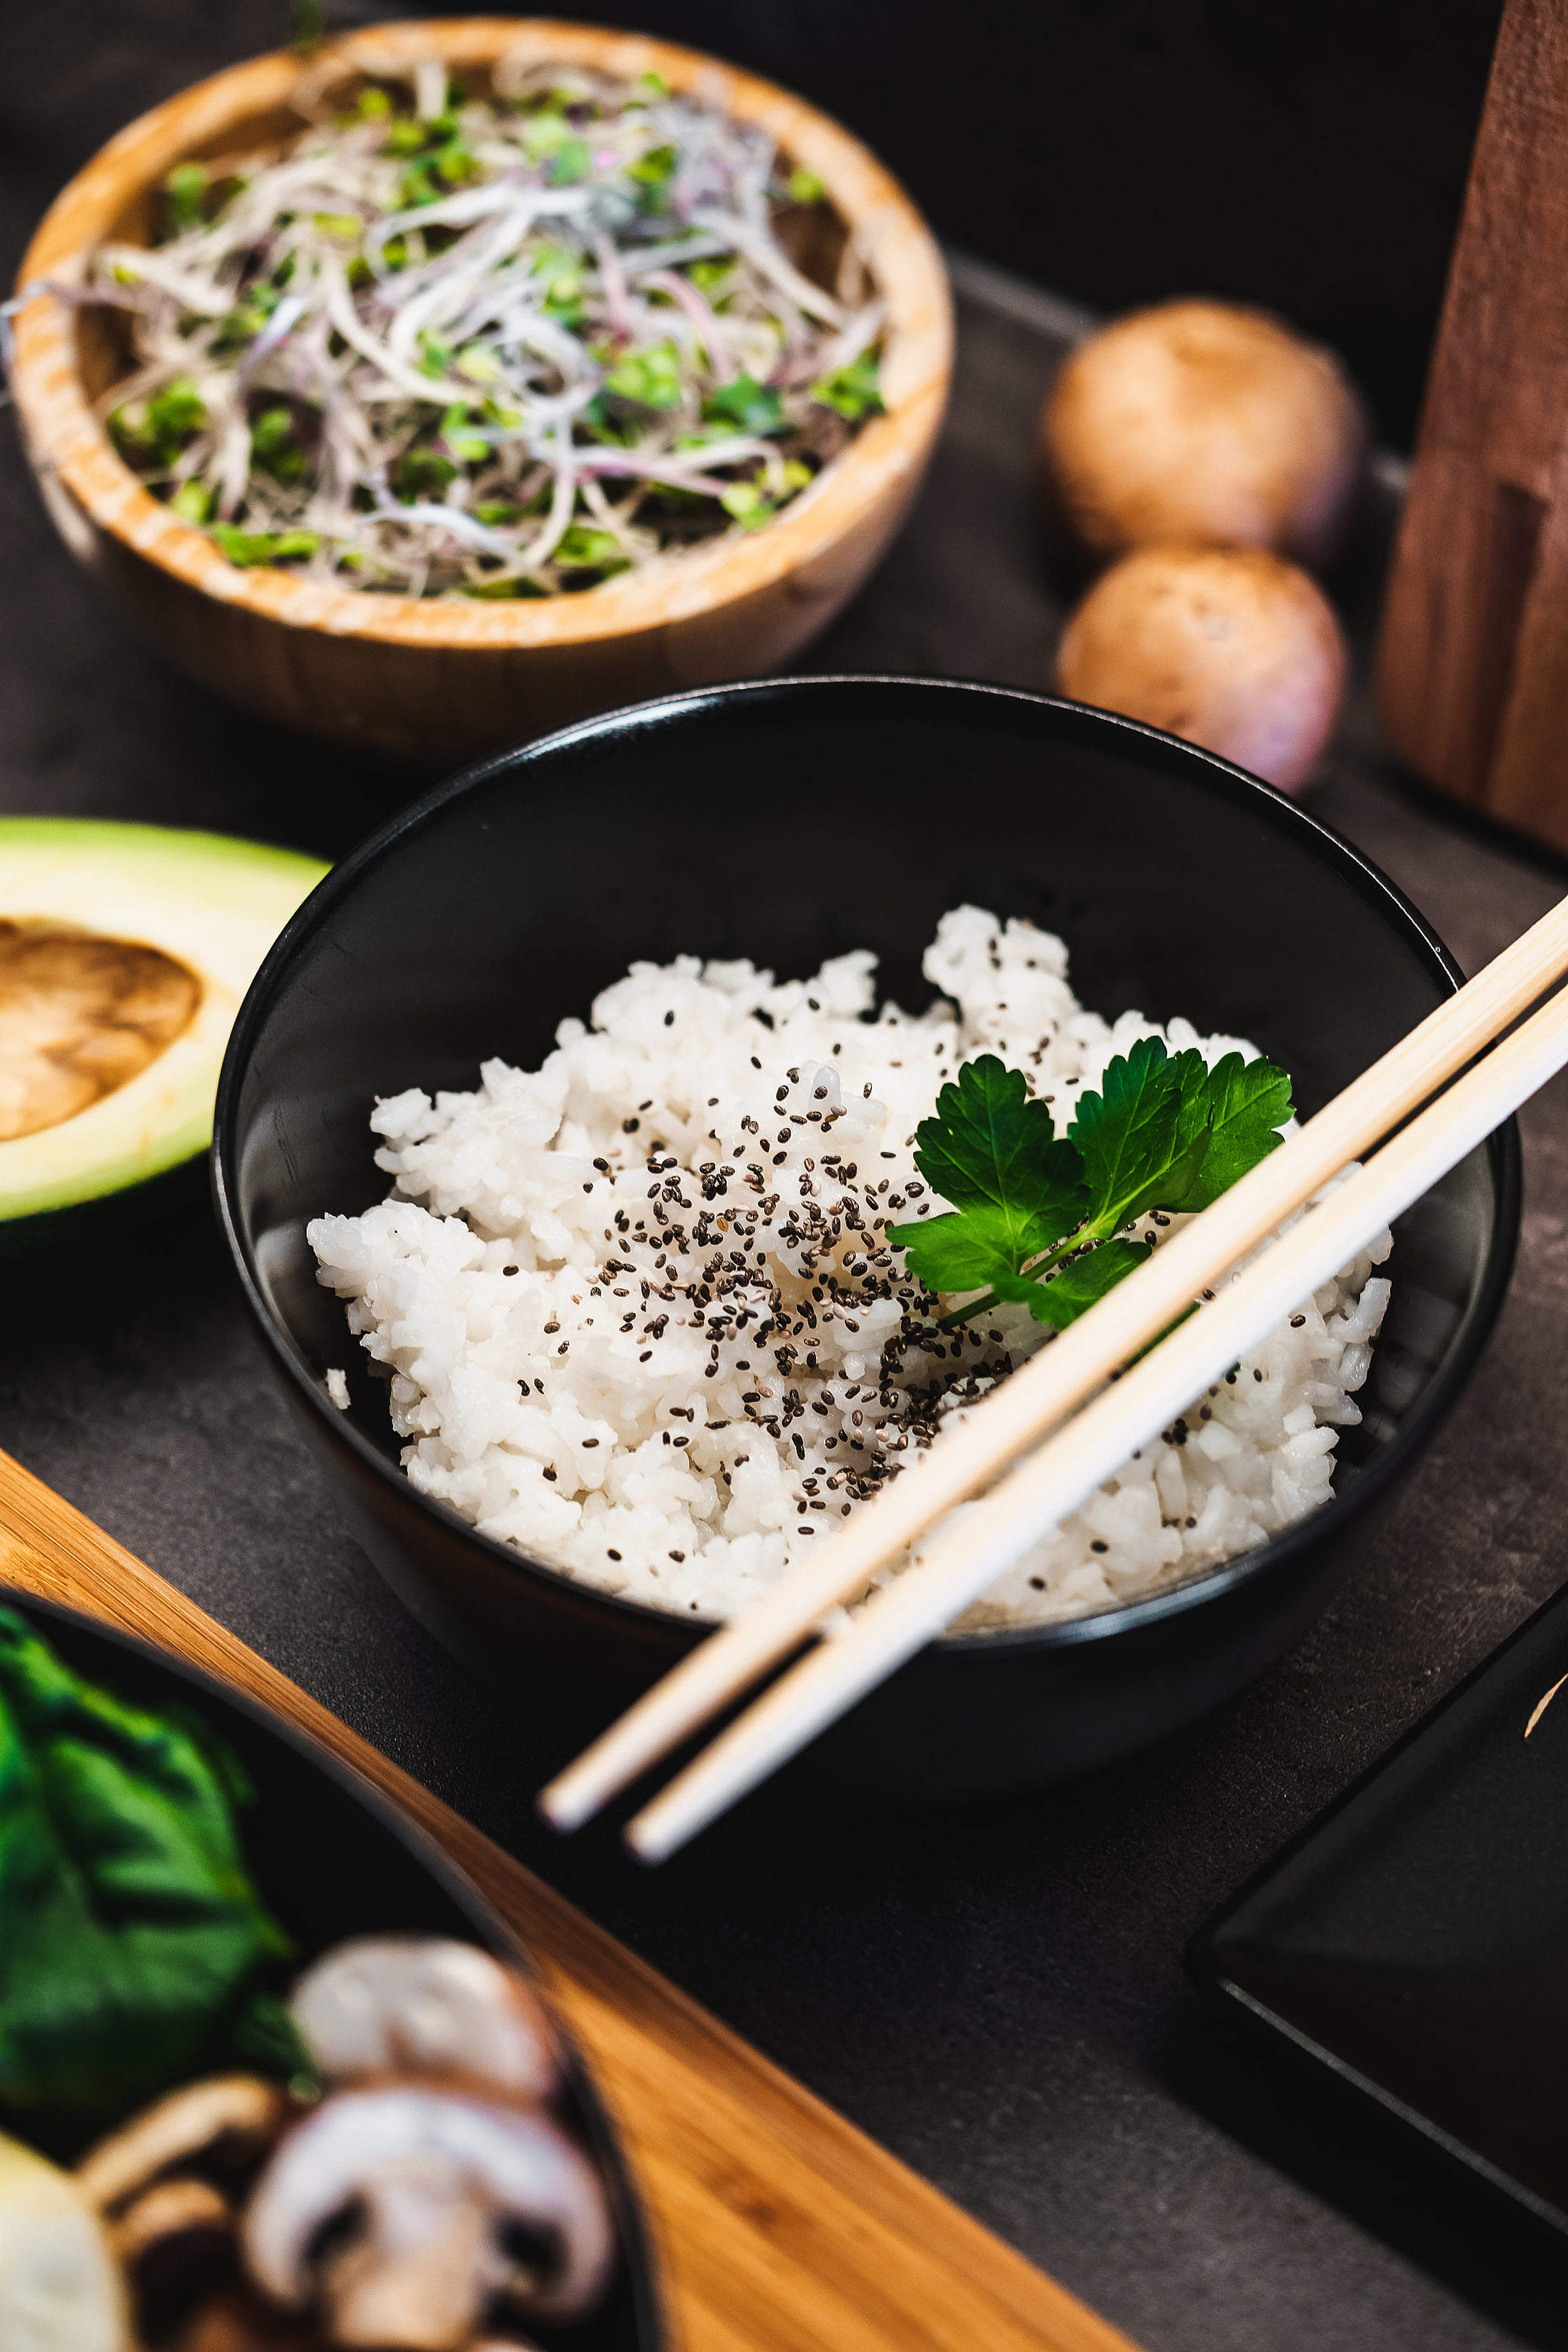 Cooked Jasmine Rice in a Dark Bowl with Chopsticks Free Stock Photo